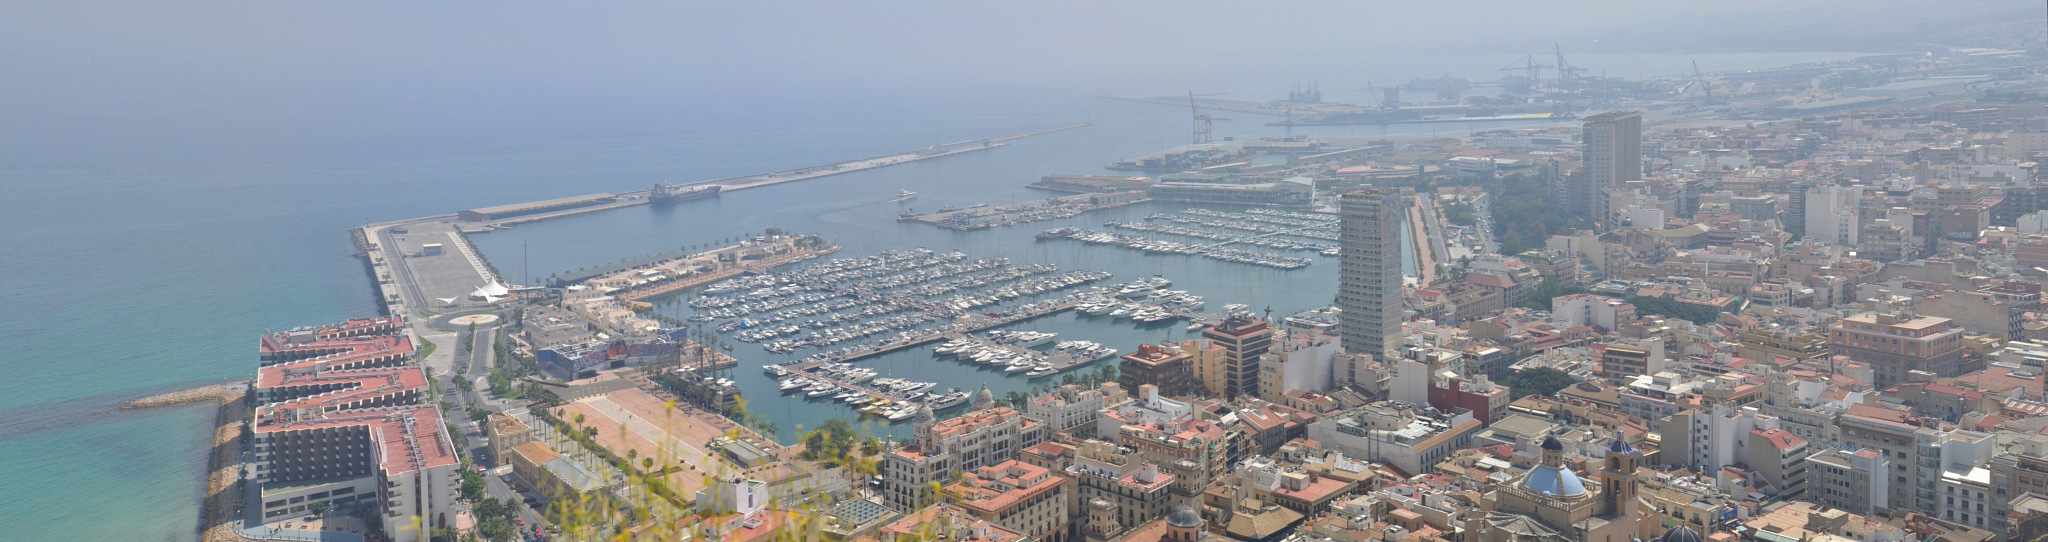 Panorama (13) - Alicante (7) by Derek Clarke